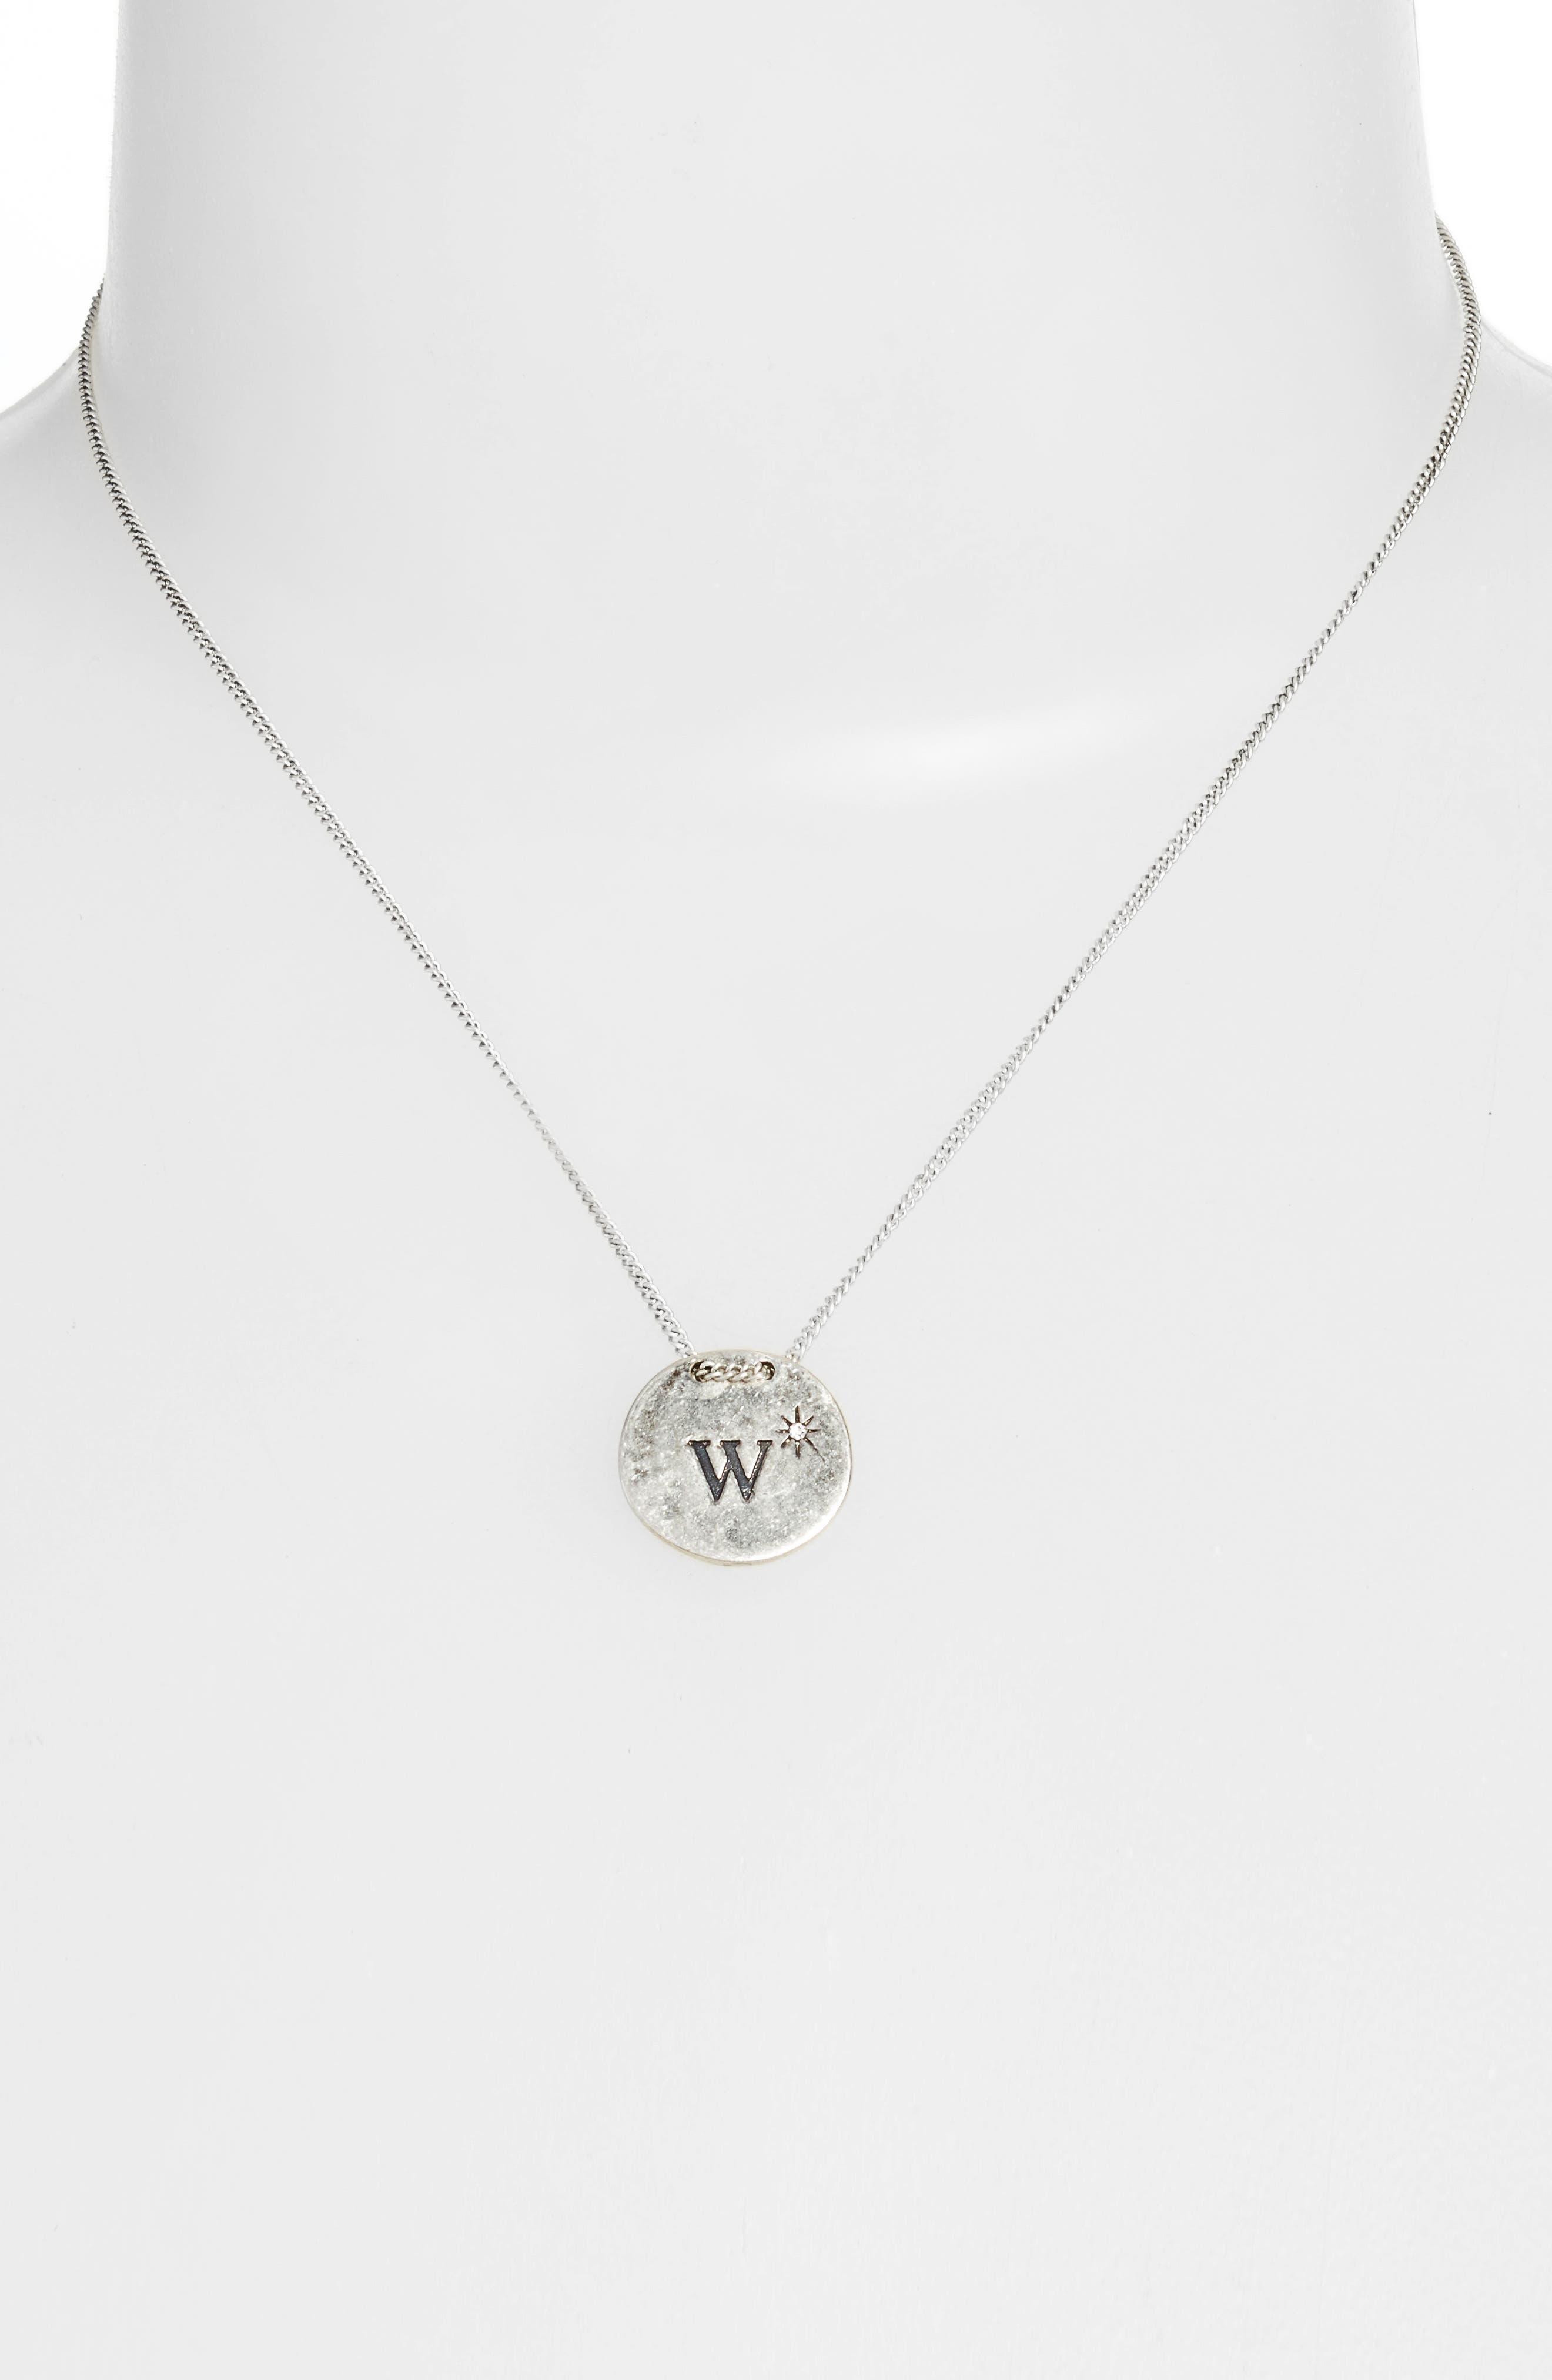 Initial Collar Necklace,                             Alternate thumbnail 2, color,                             W- Clear- Rhodium